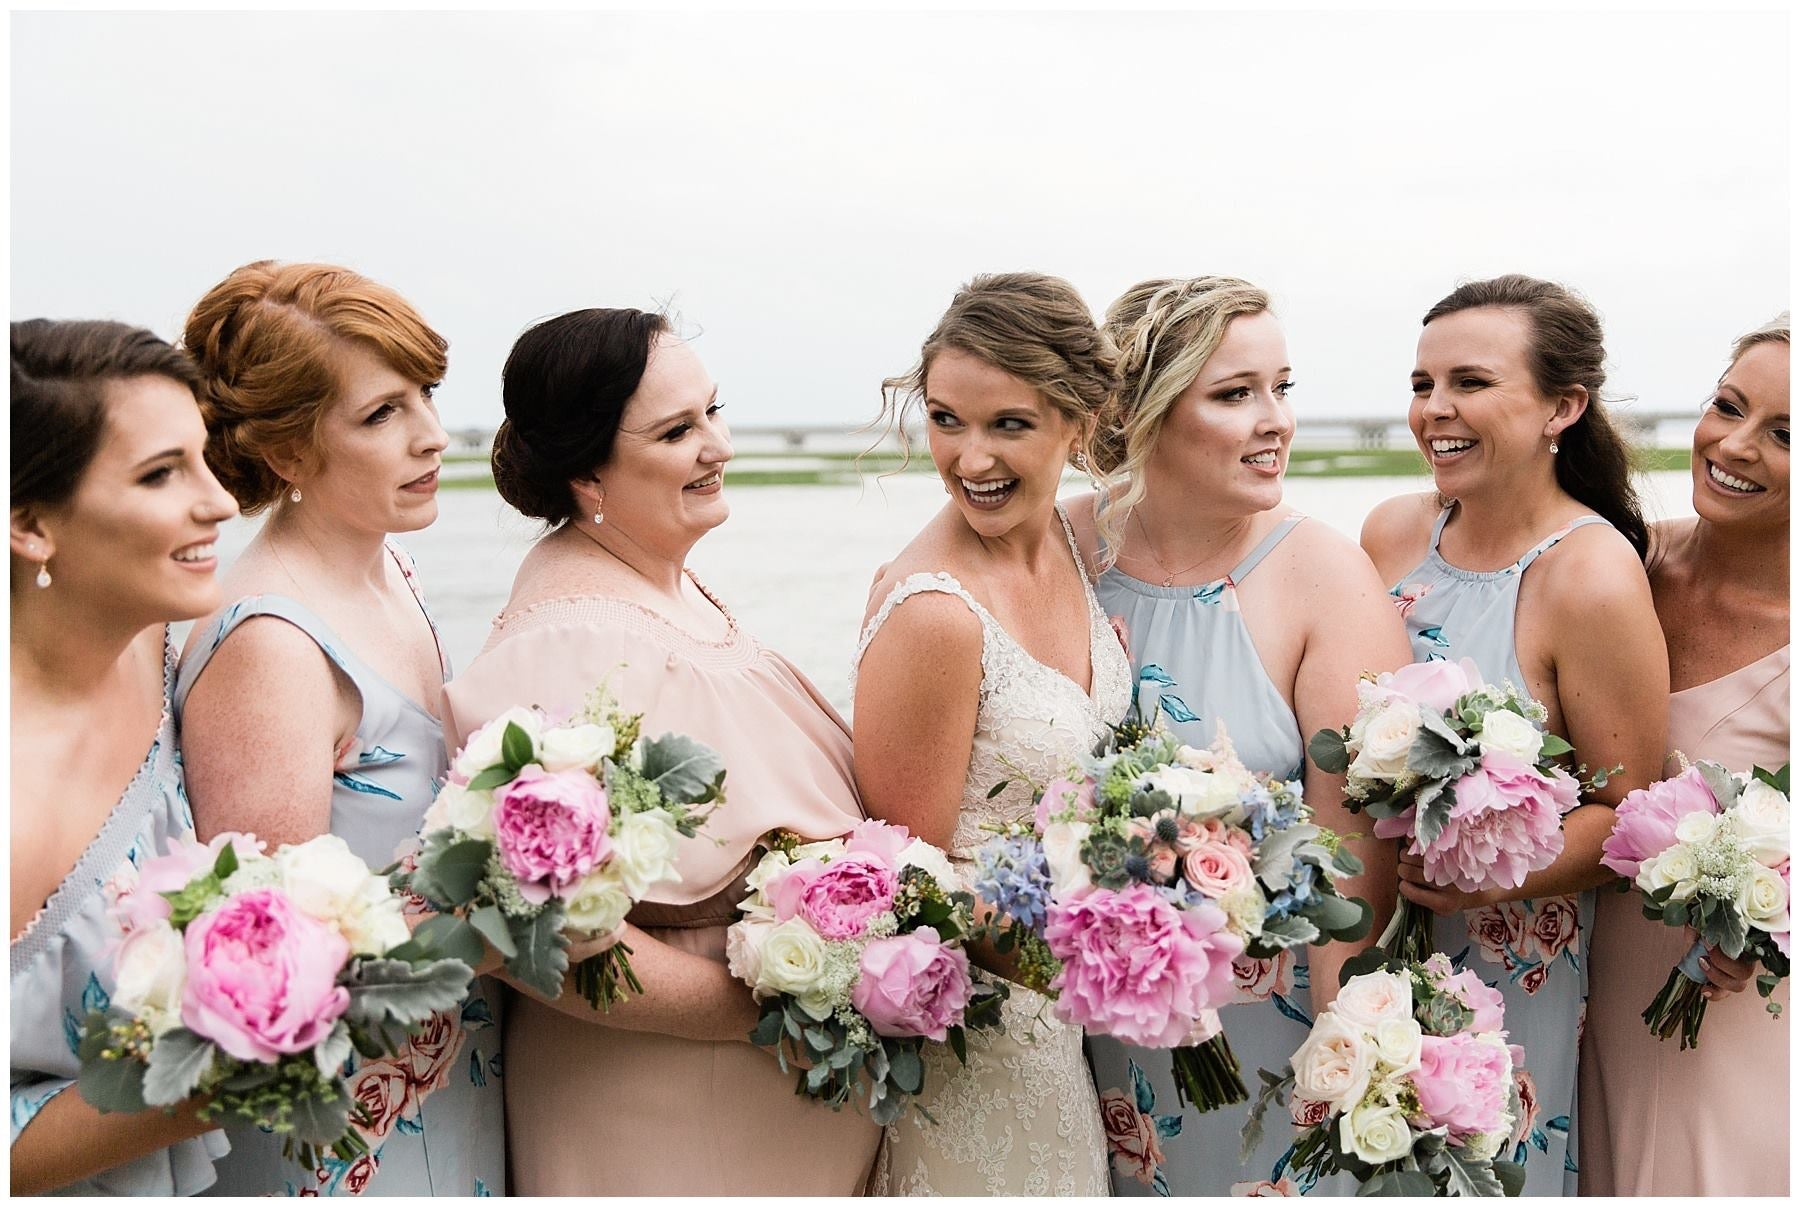 little miss lovely floral design // chicoteague island, va wedding // light pink, dusty blue, ivory wedding flowers